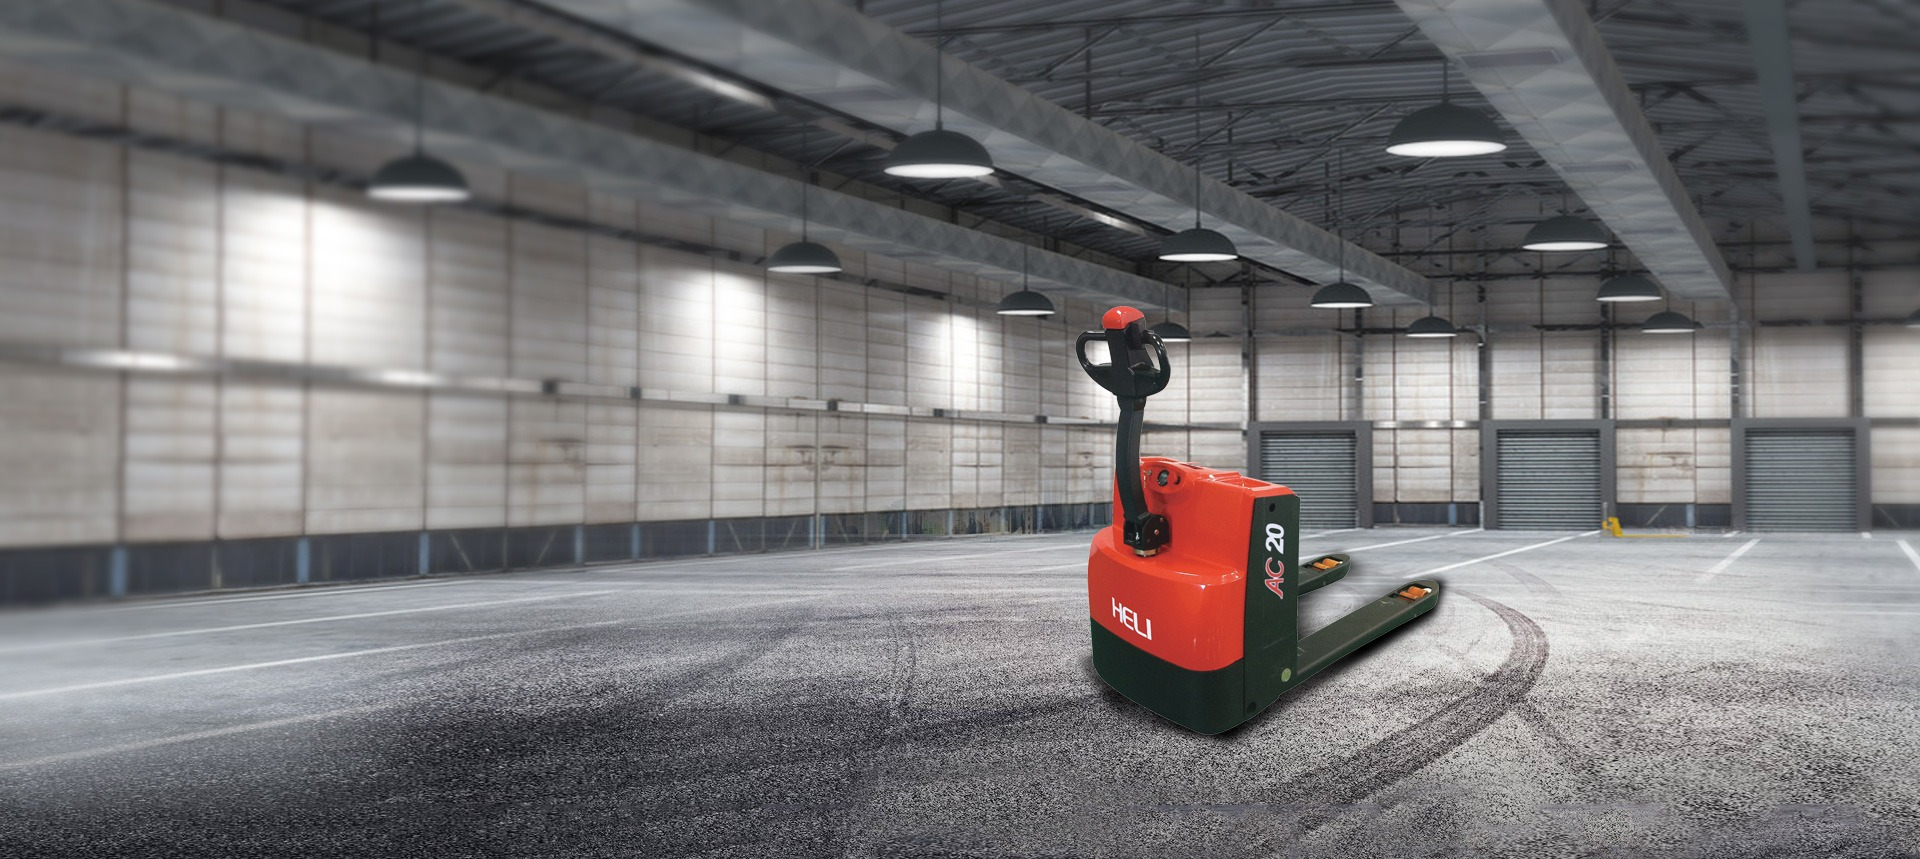 Why choose an electric pallet over a manual pallet truck